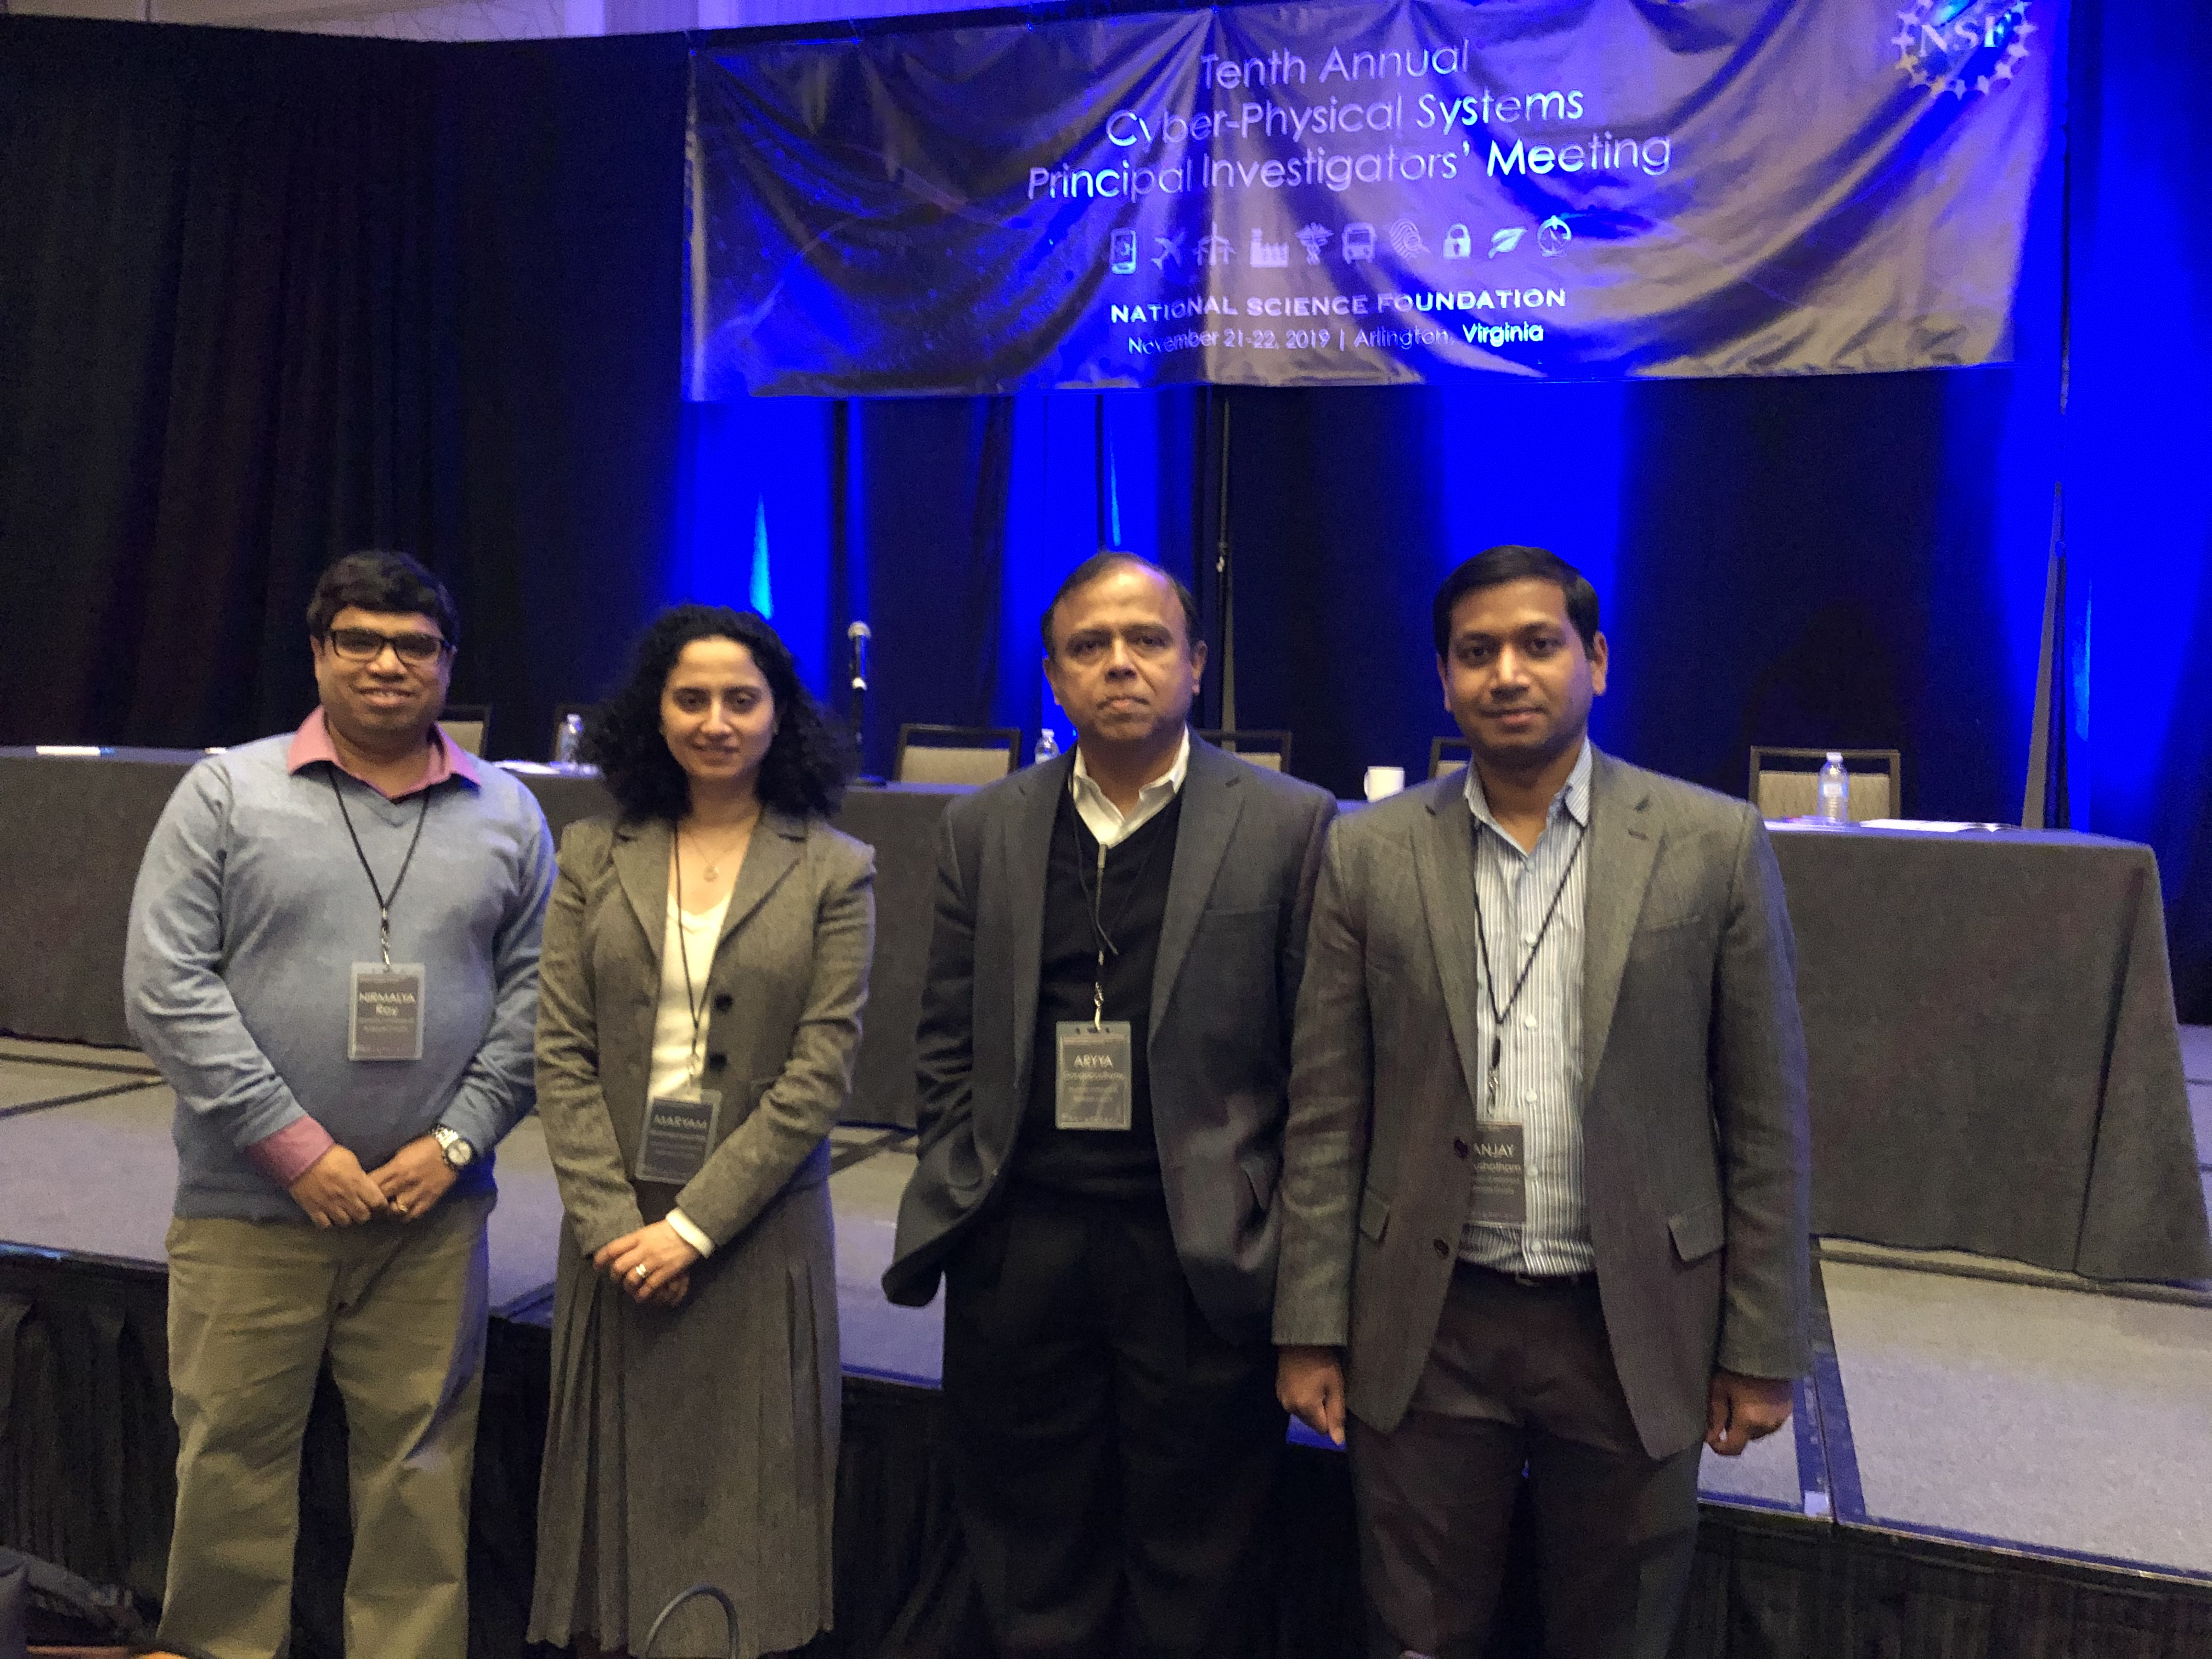 IS Team Attends NSF Cyber-Physical Systems Principal Investigators' Meeting